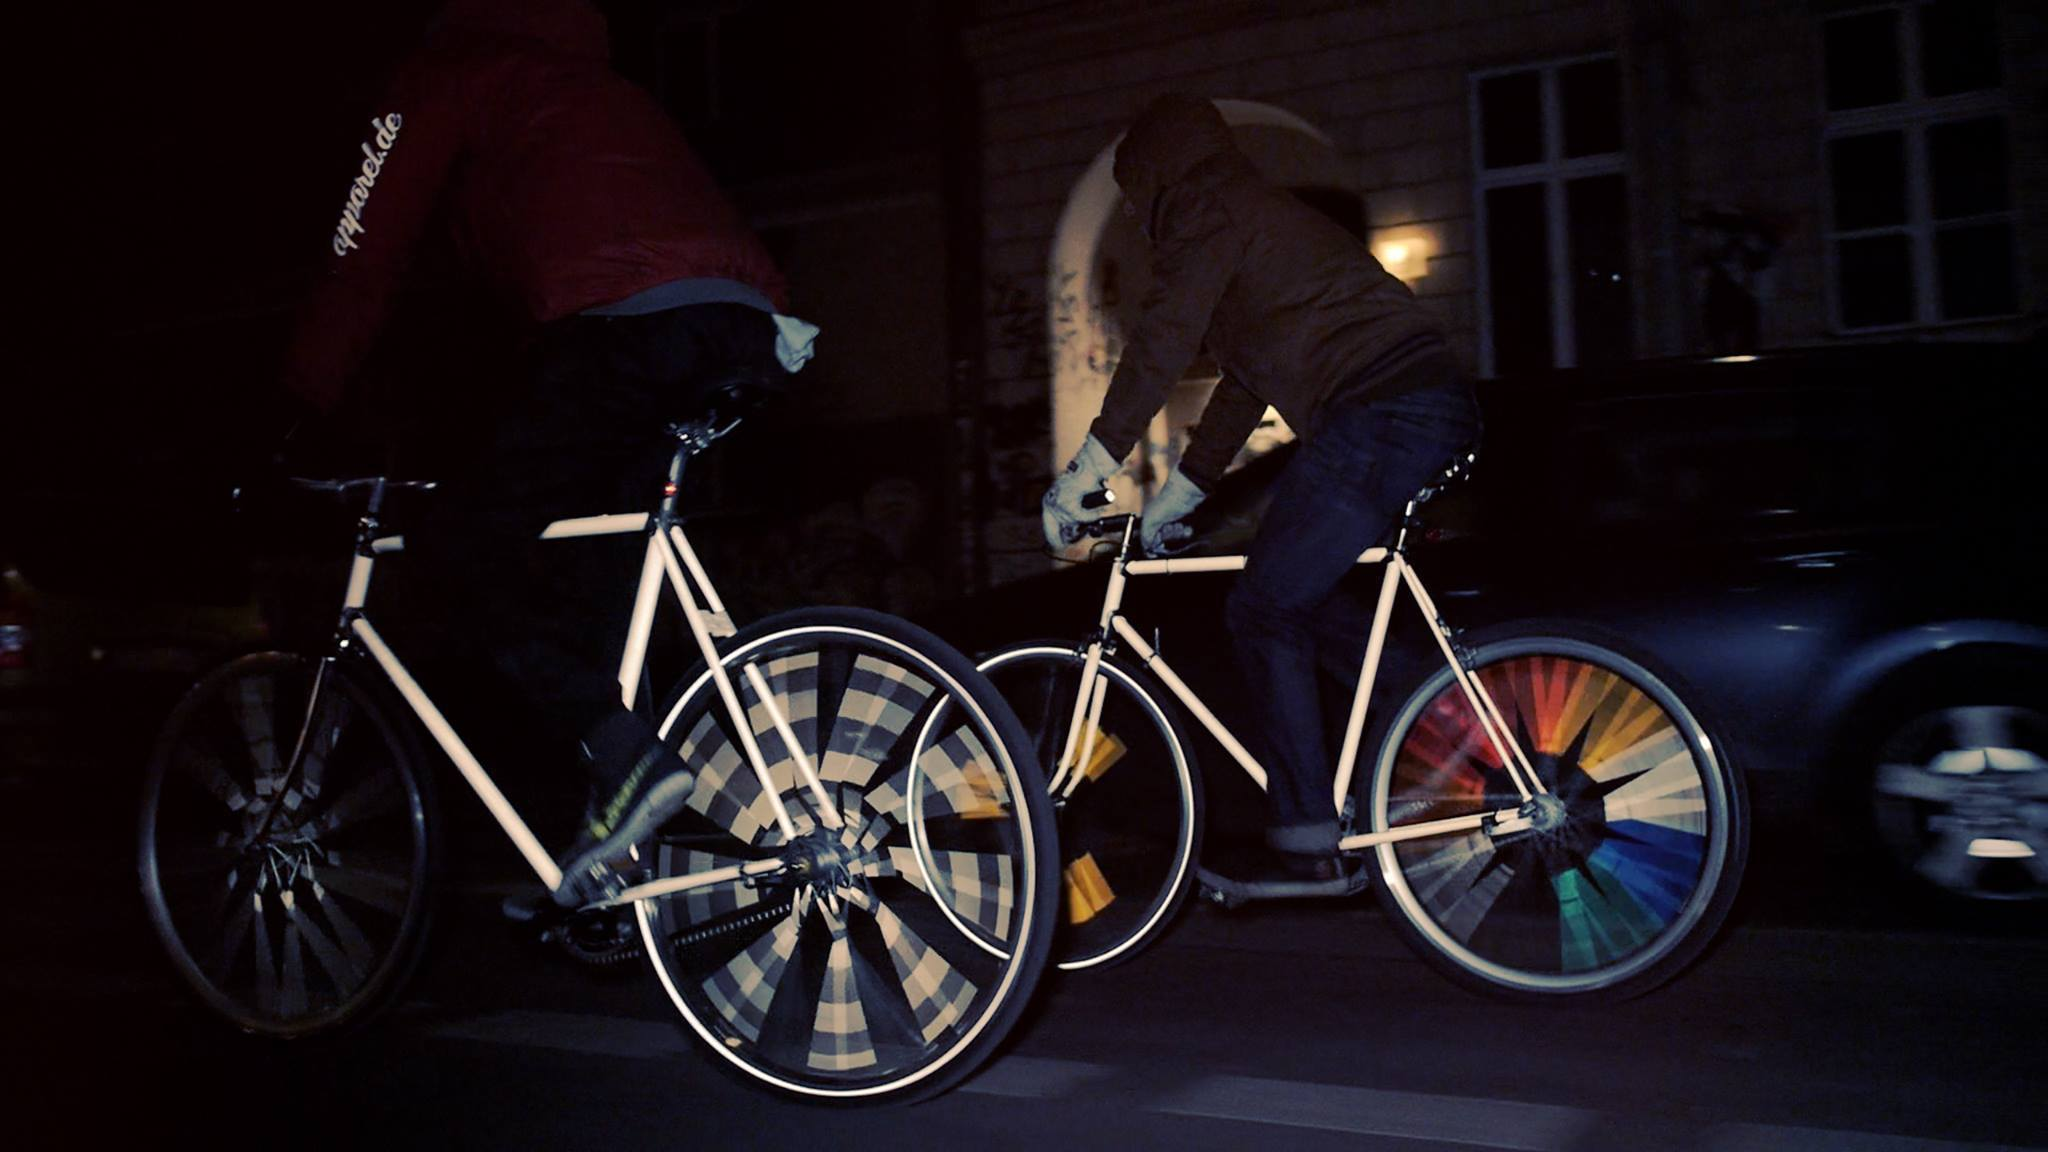 Happarel Bicycles propose des tatouages fluorescents